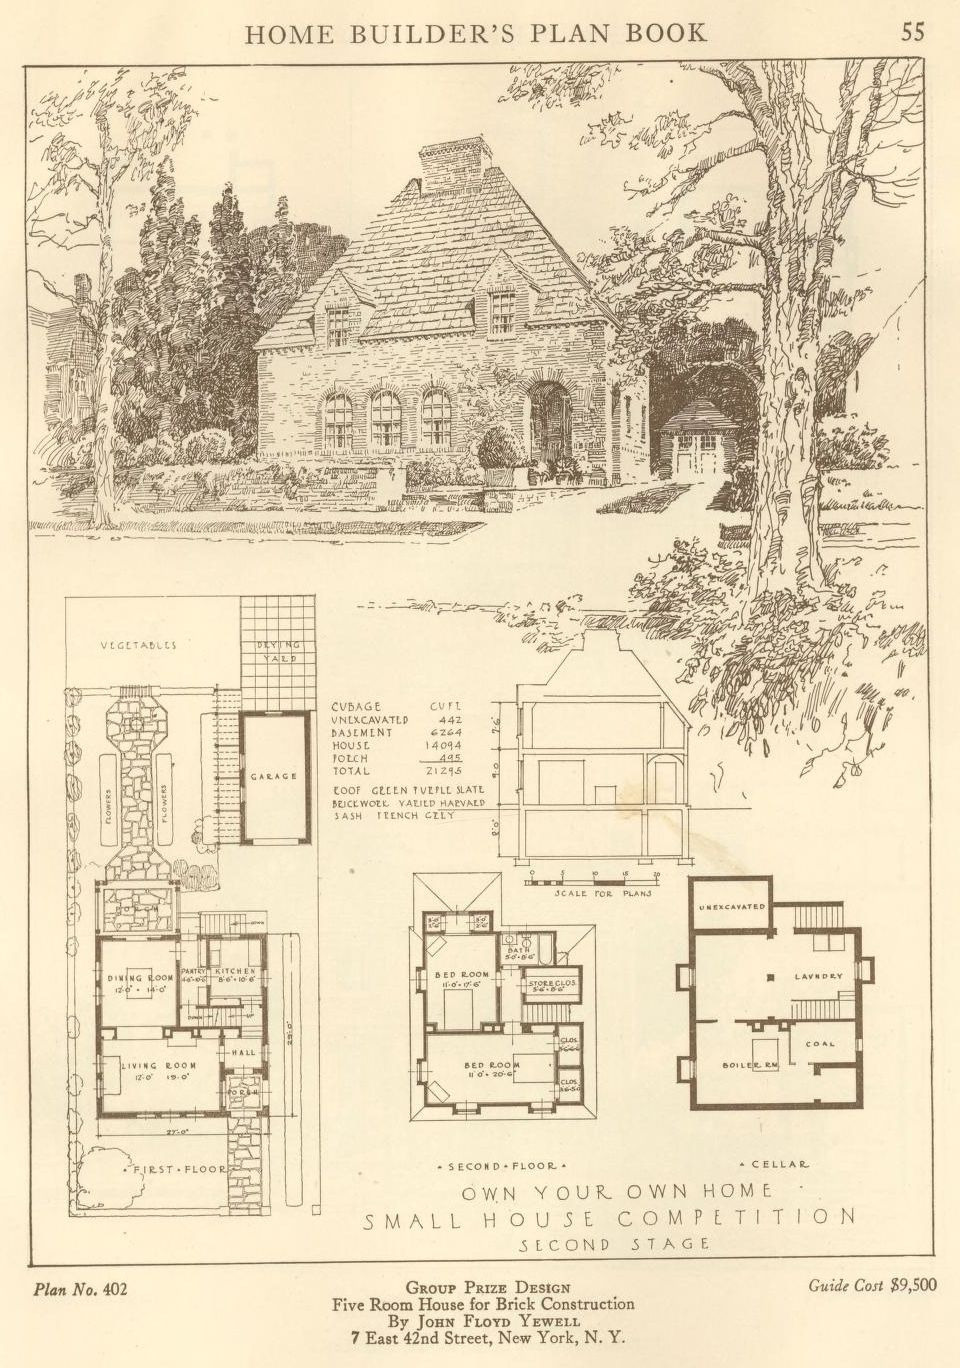 House Plan Books Online Fresh Home Builder S Plan Book Building Plan Holding Corp